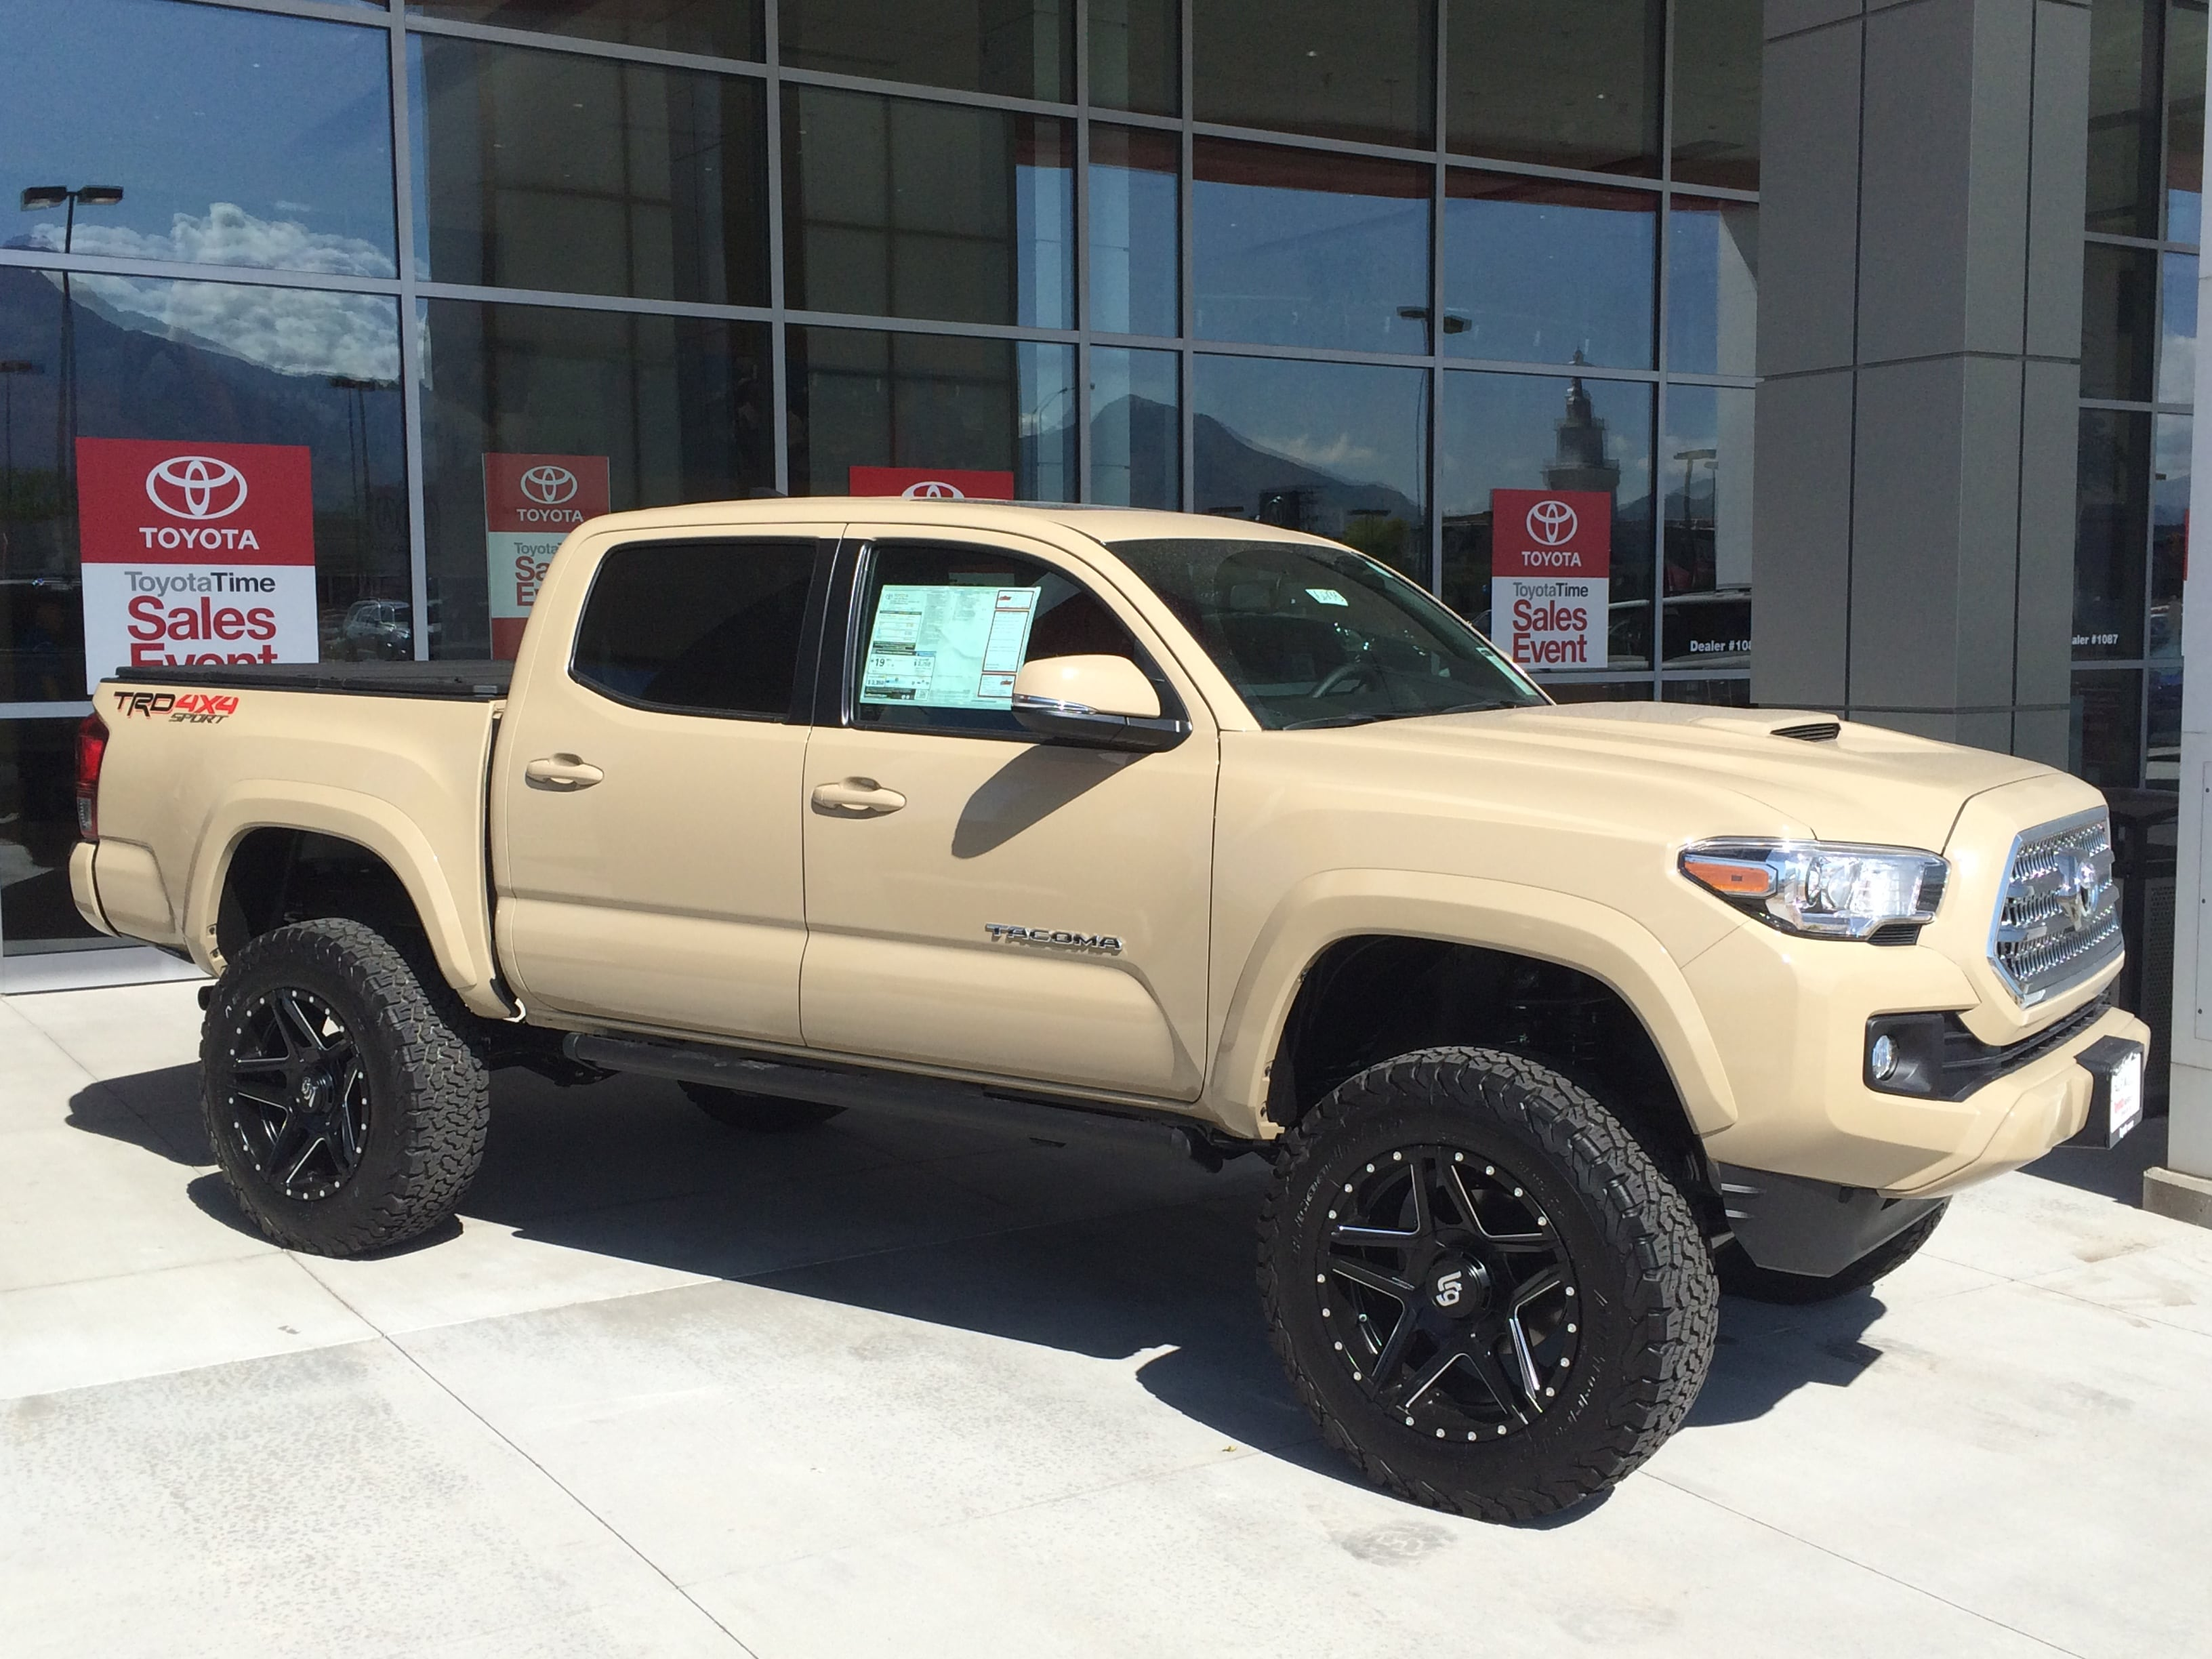 kit toyota of inch car a leveling ta lift update kk tacoma picture